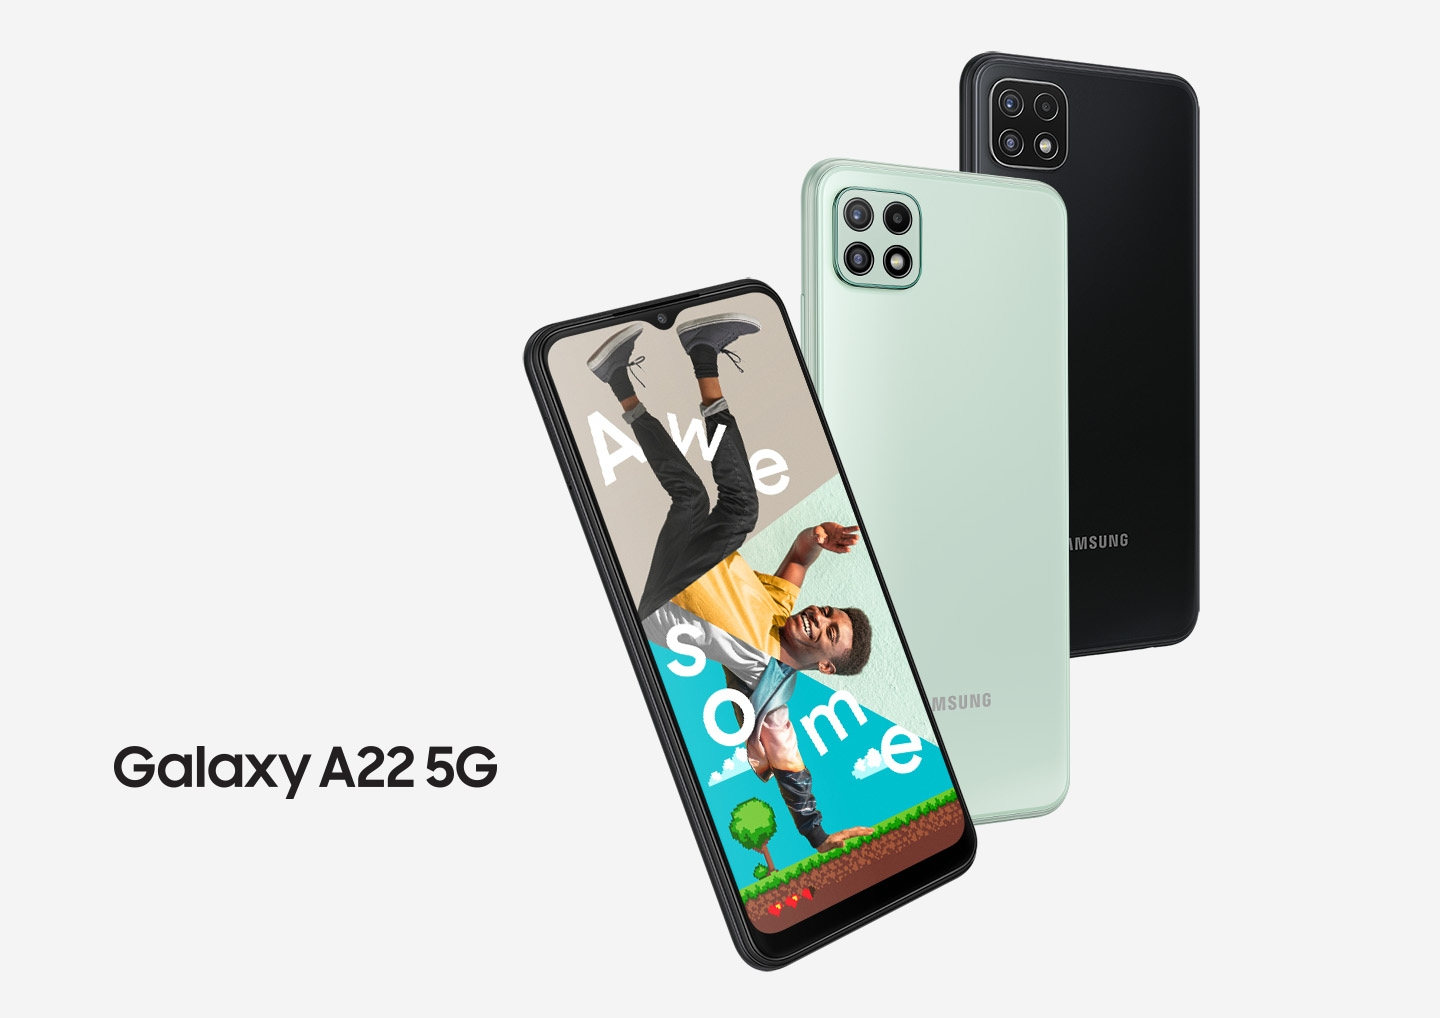 Three Galaxy A22 5G series phones in a row. One seen from the front, and onscreen is a collage of a man's arm, upper body, and legs with the word Awesome. Two seen from the rear to show the rear camera and the colors violet and gray.